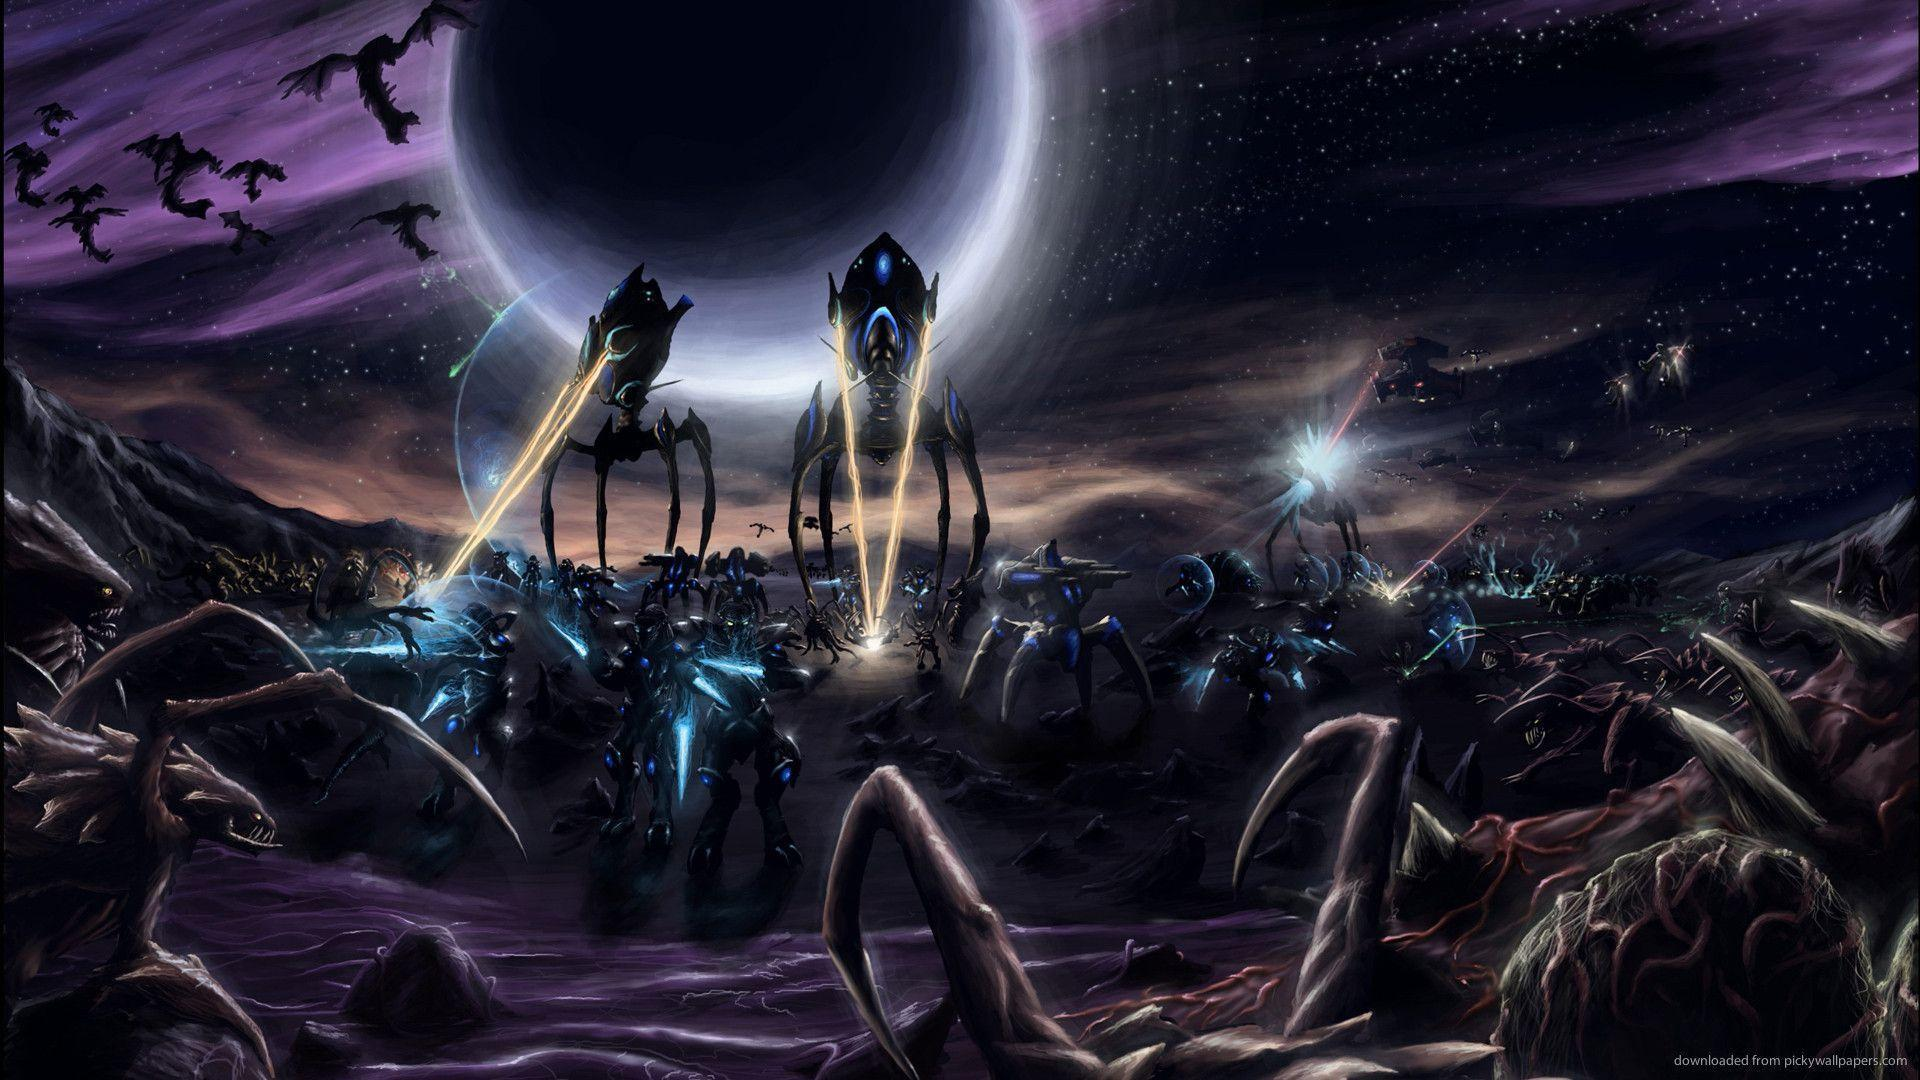 Protoss Against Zerg Wallpapers For iPad 2